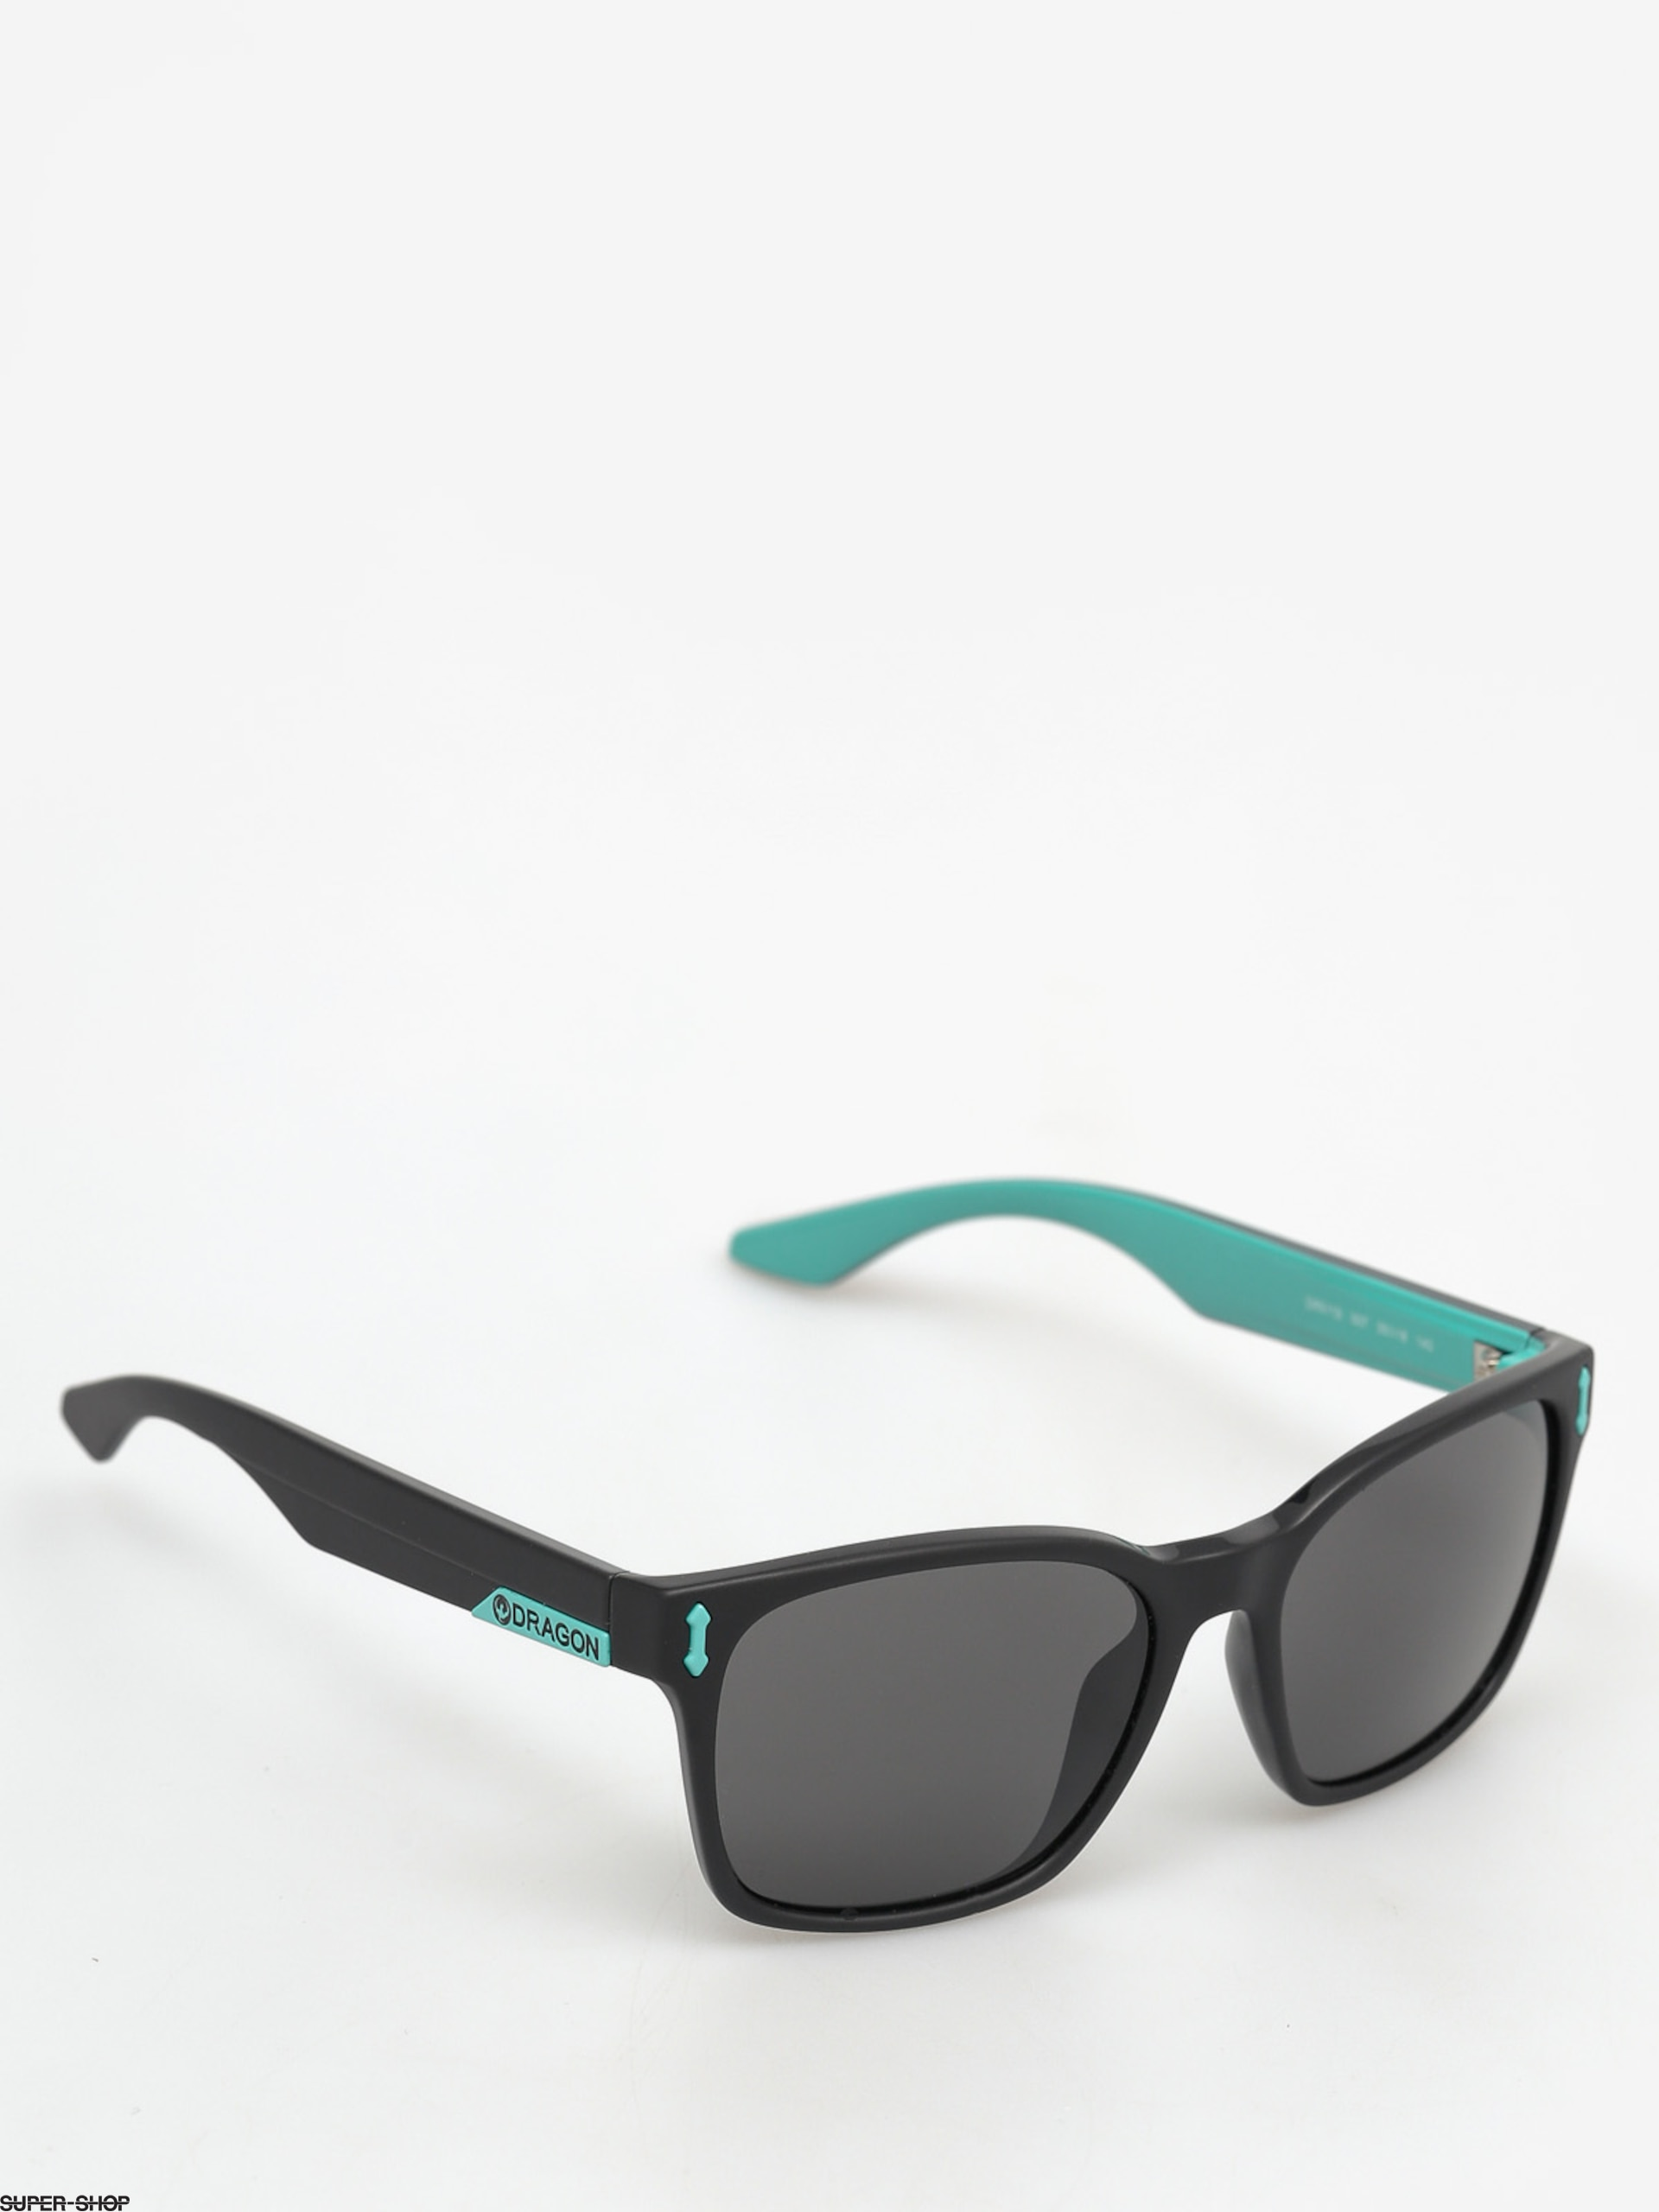 Dragon Sunglasses Liege (matte black/teal)